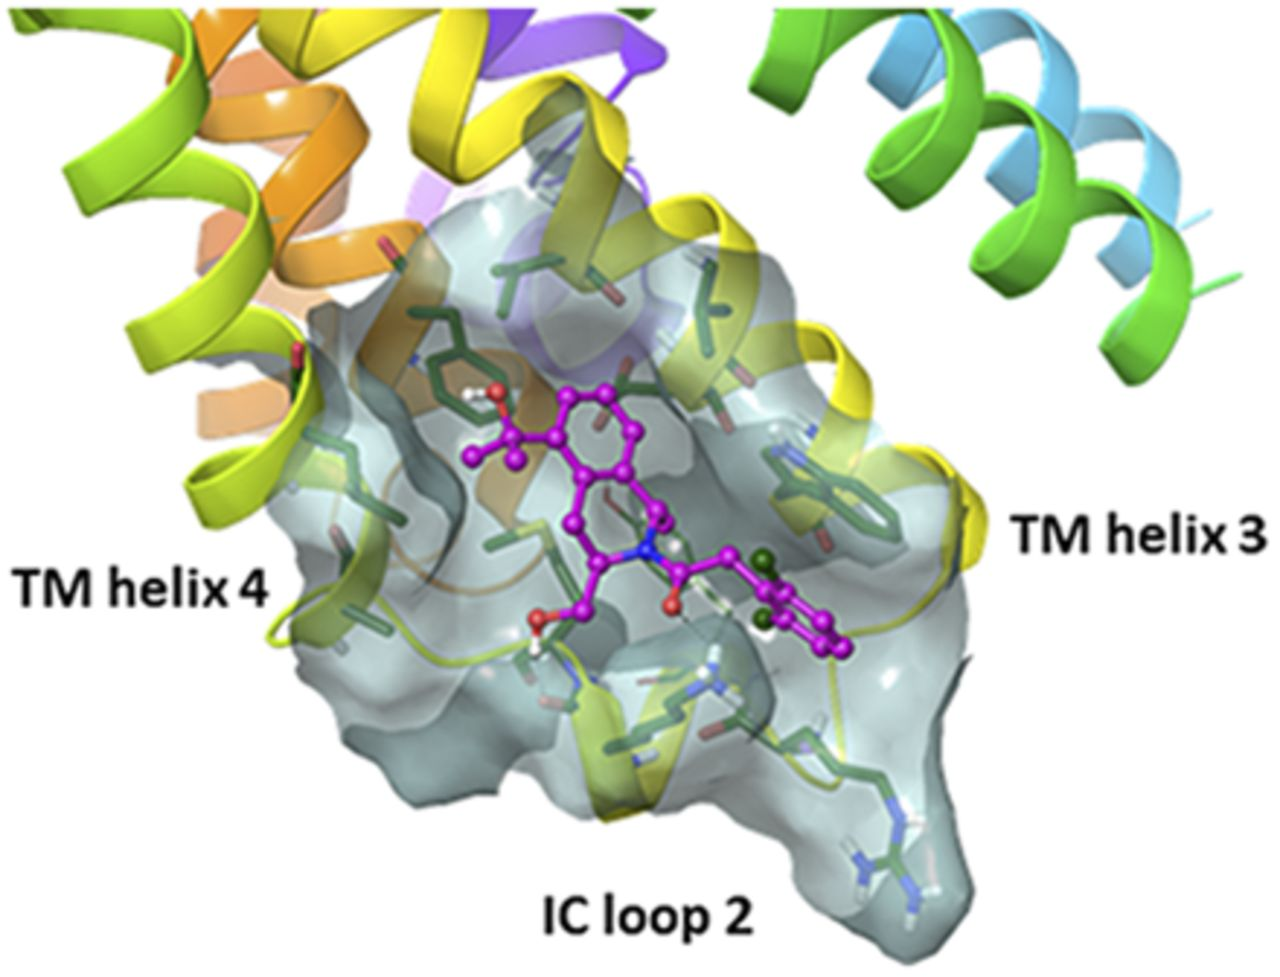 Intracellular Binding Site for a Positive Allosteric